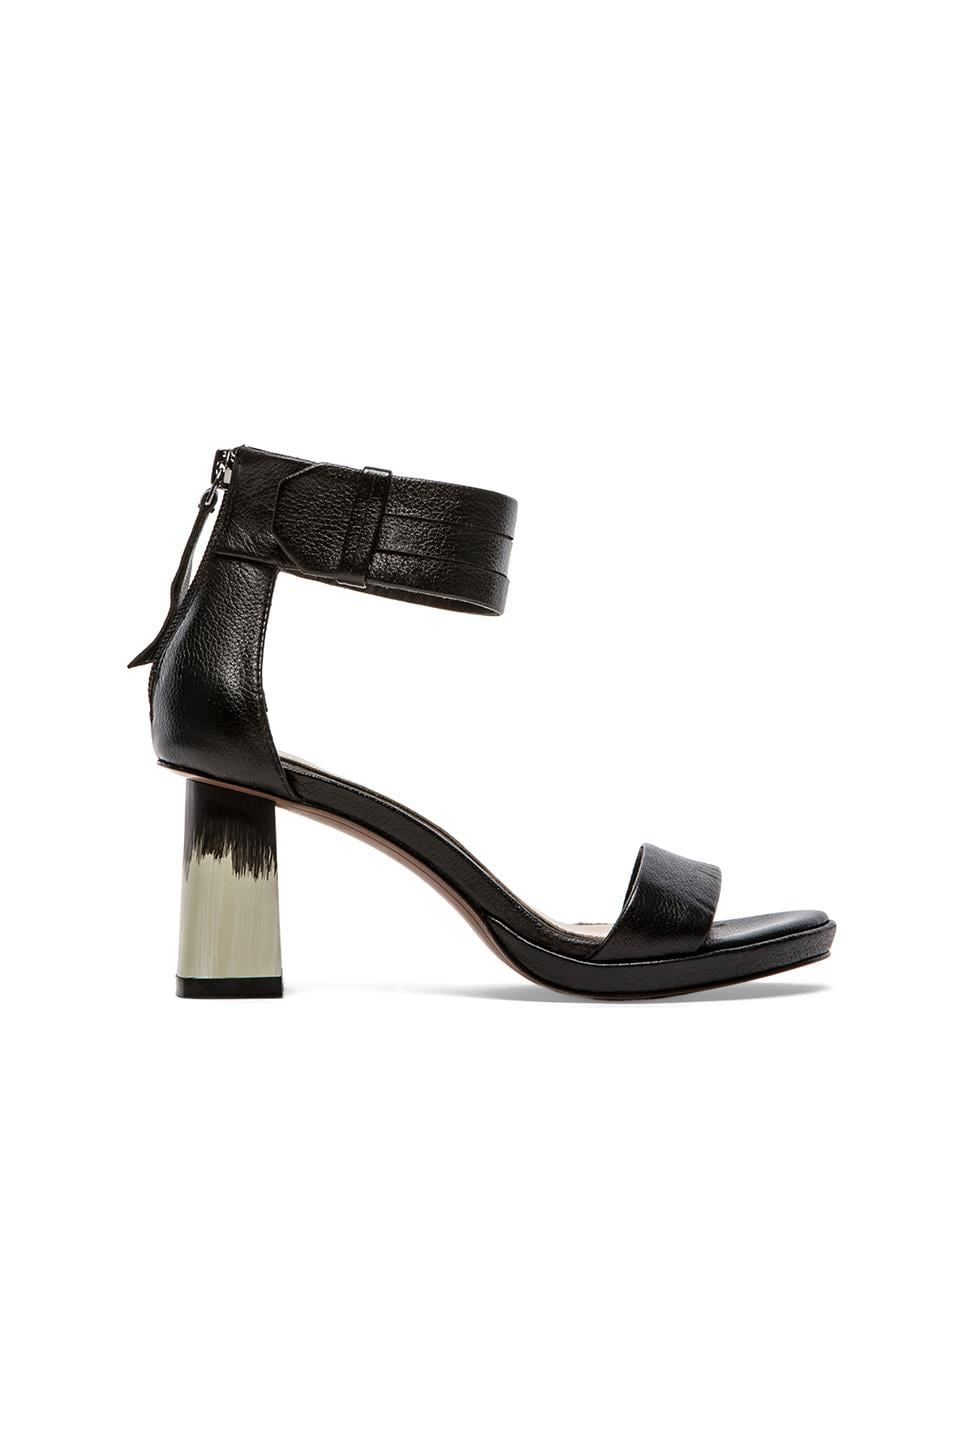 DEREK LAM 10 CROSBY Marcel Sandal in Black Tumbled Leather